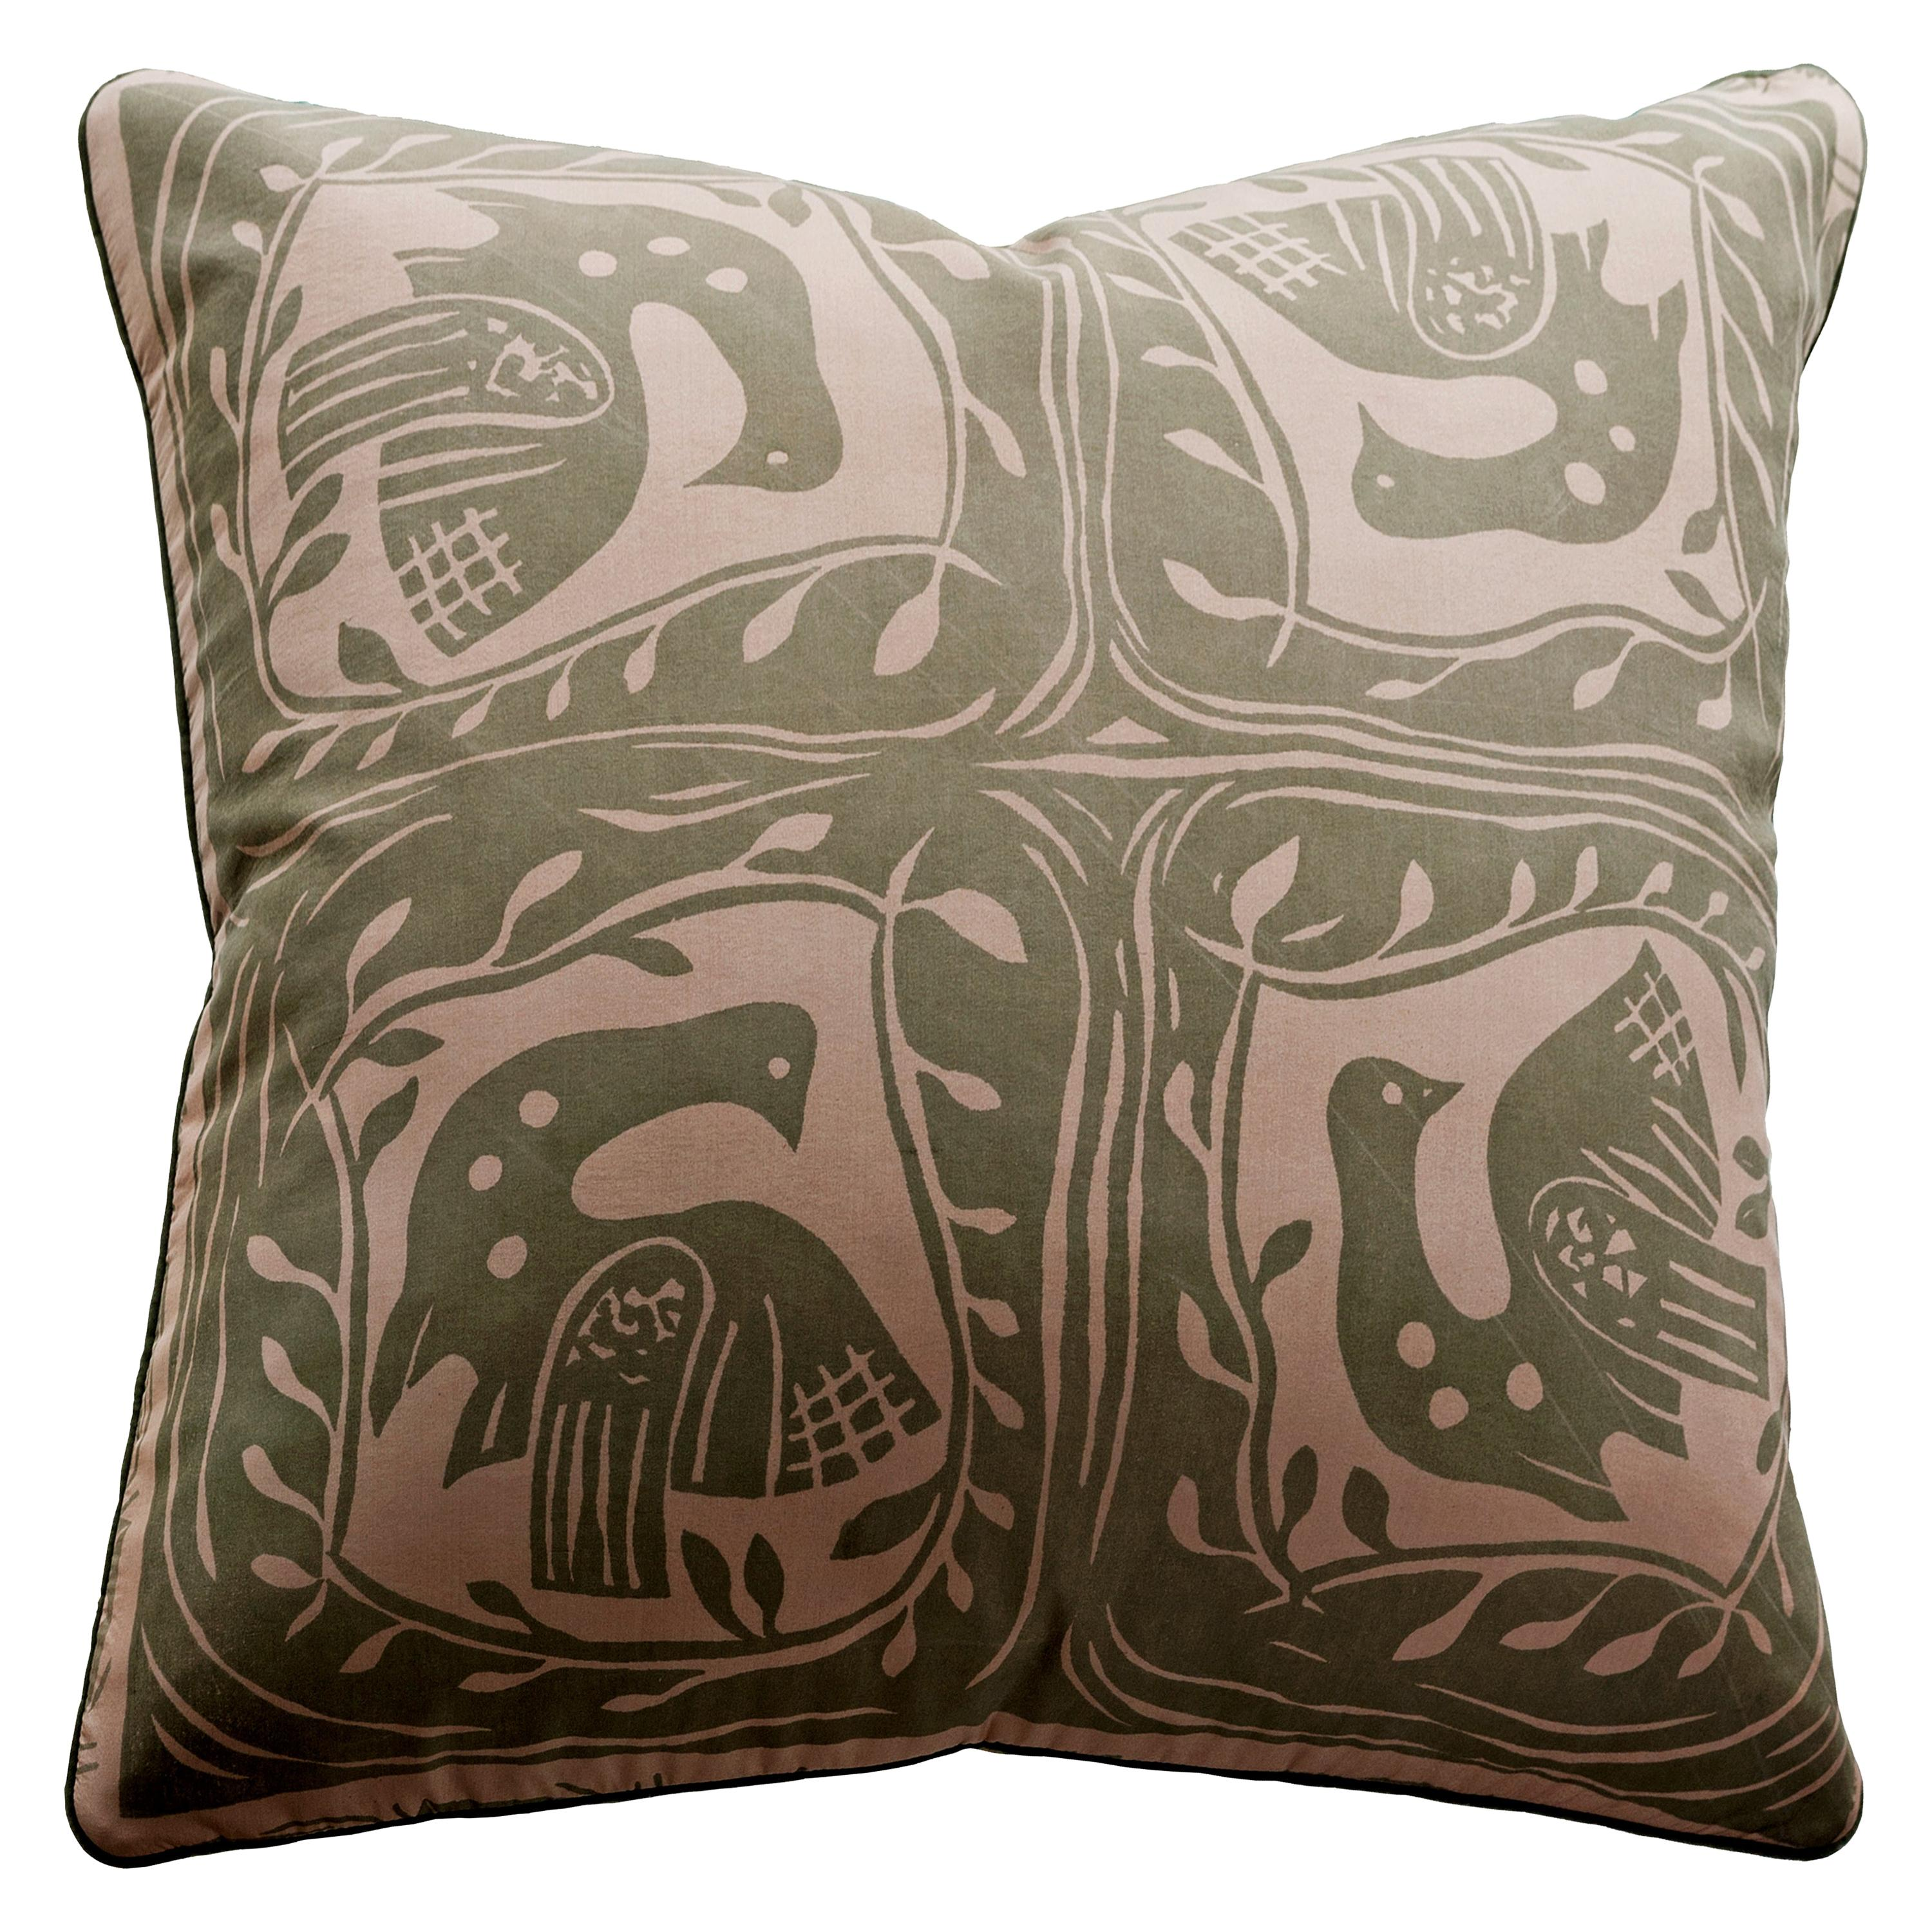 Vintage Cushions, Luxury Silk Bespoke Pillow 'Dove of Peace', Made in London